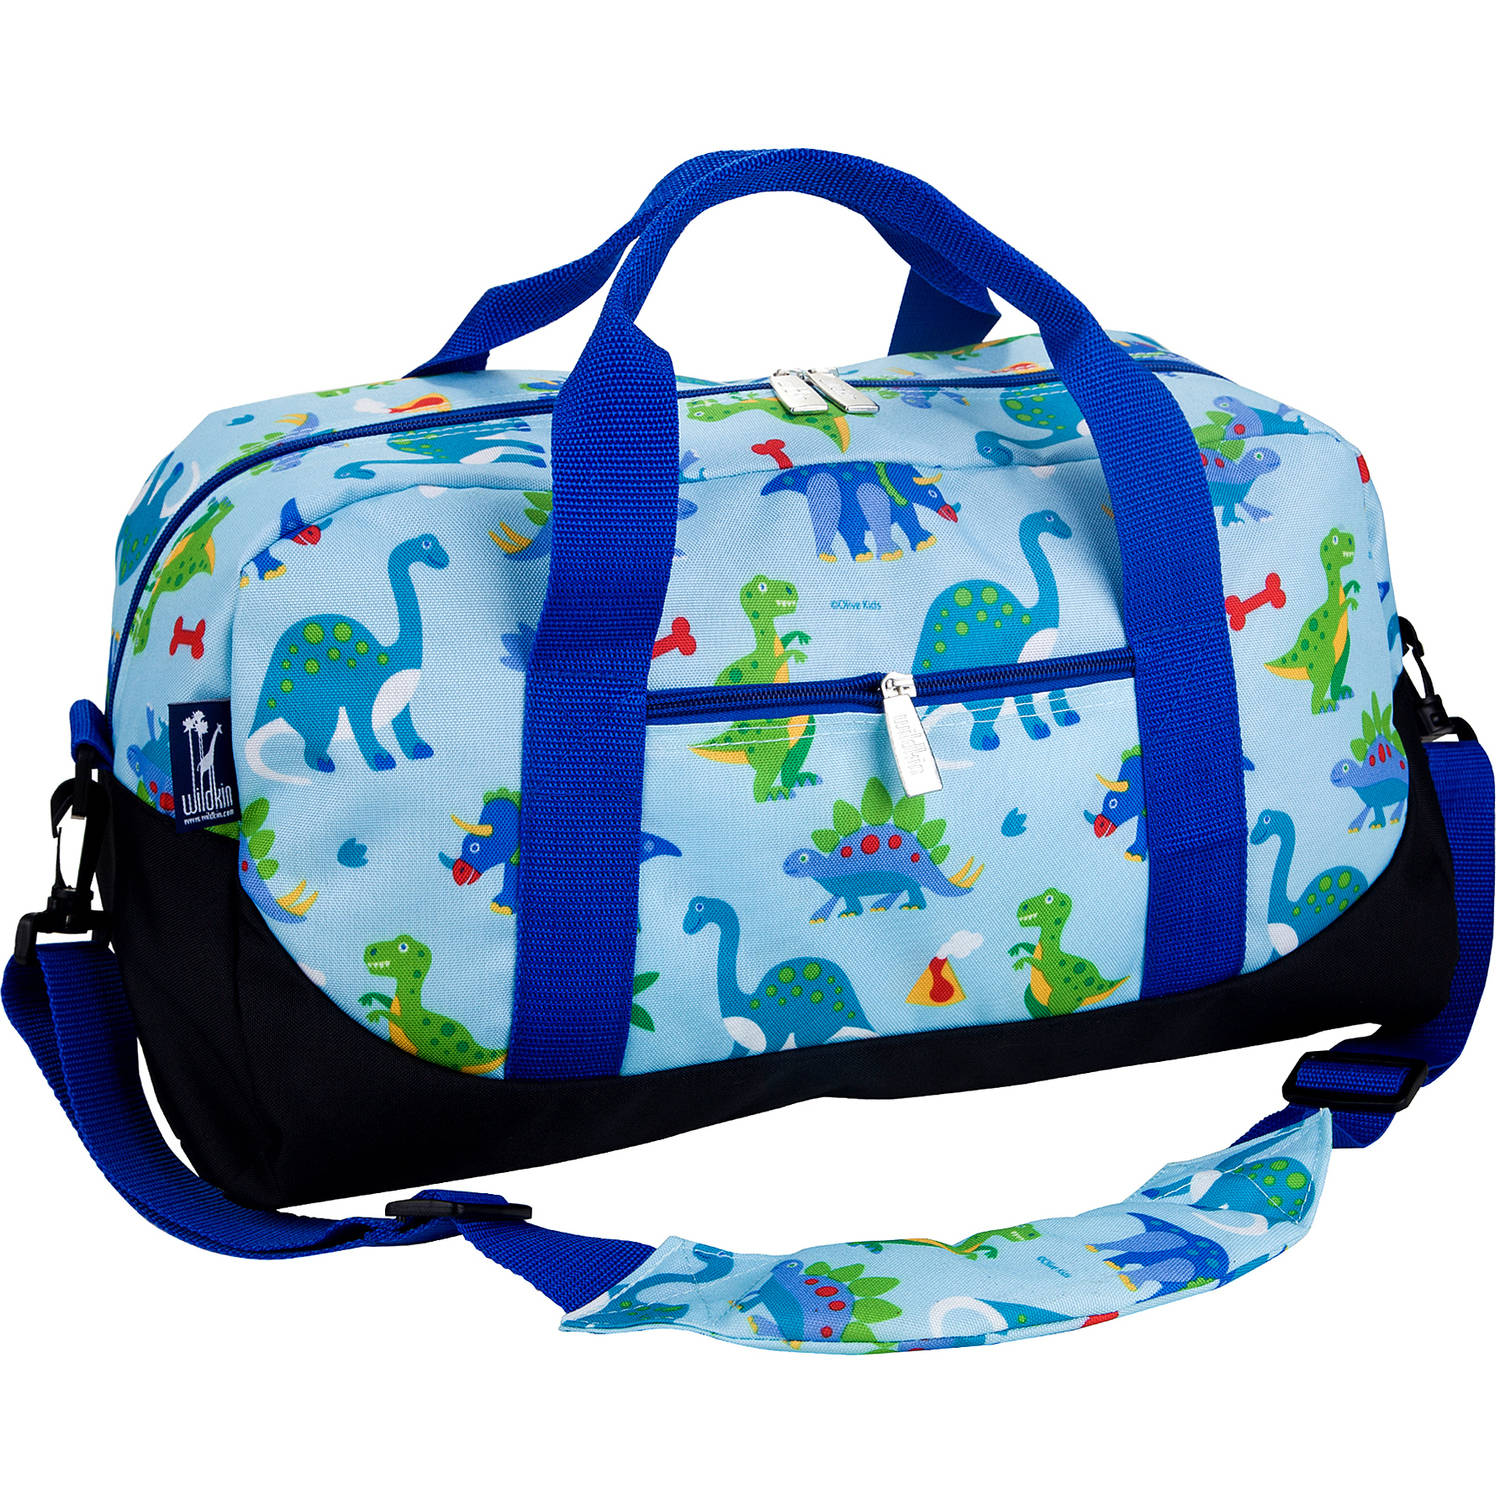 Olive Kids Dinosaur Land Overnighter Duffel Bag by Wildkin